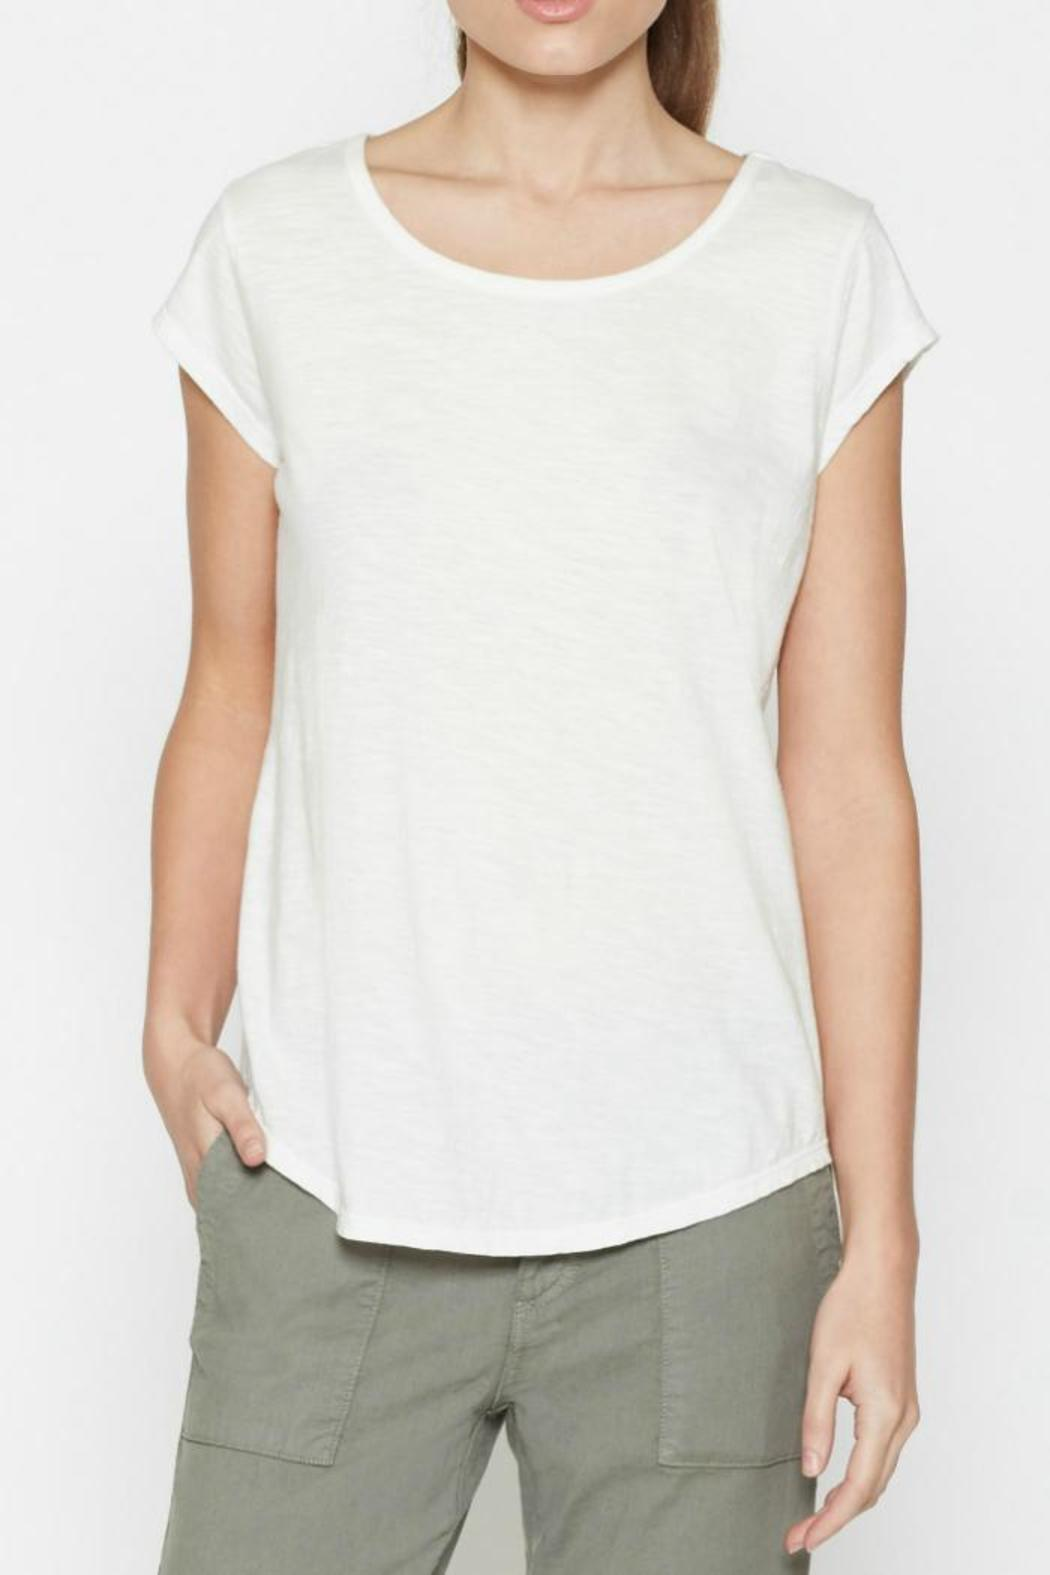 Soft Joie Dillion B Top - Front Cropped Image